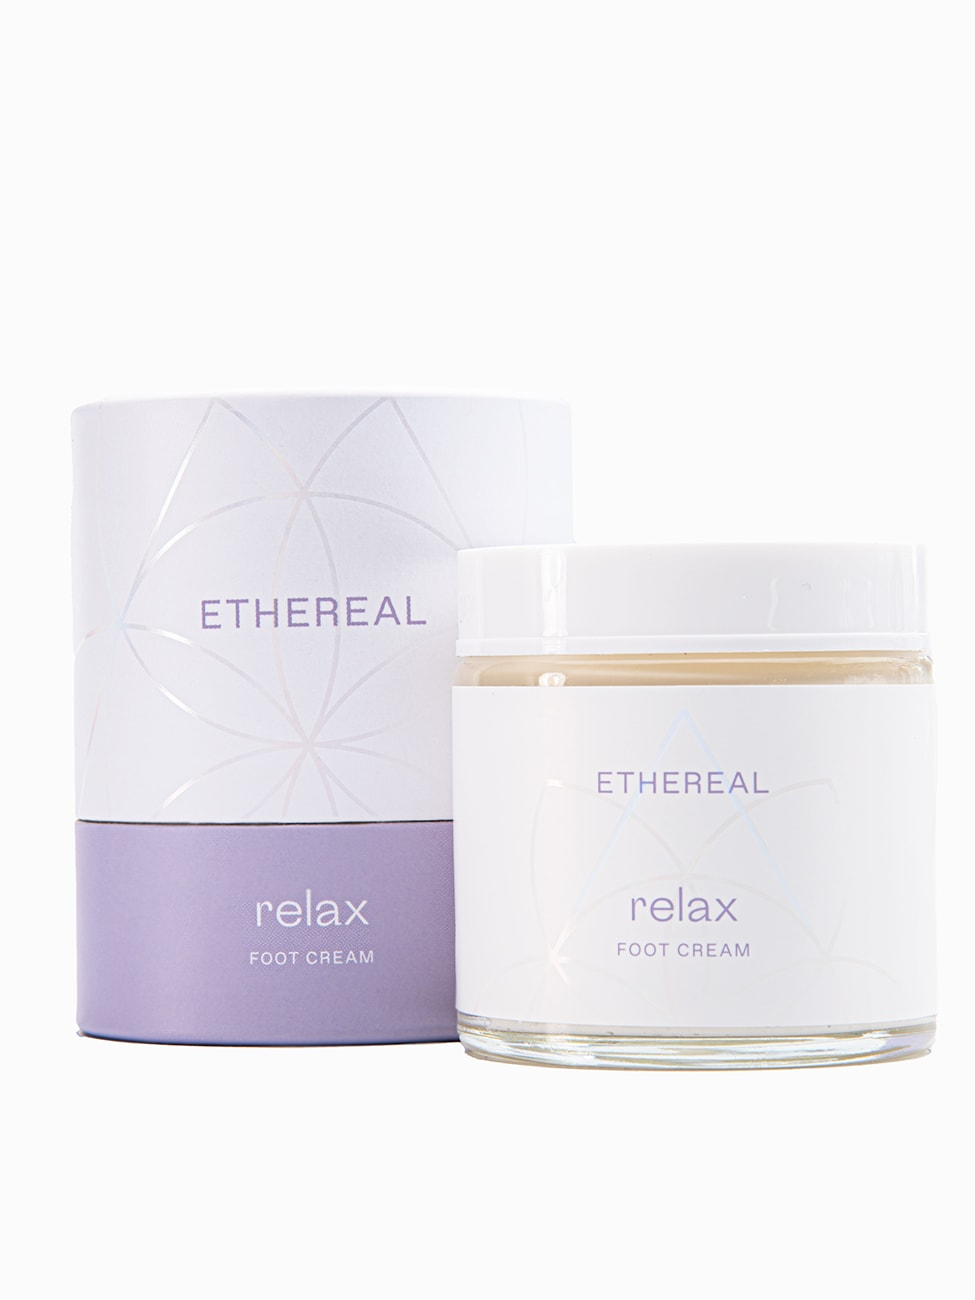 Relax_Cream_Package_Ethereal_Dermocosmetics_Skincare_Handmade_Greek_Products_1